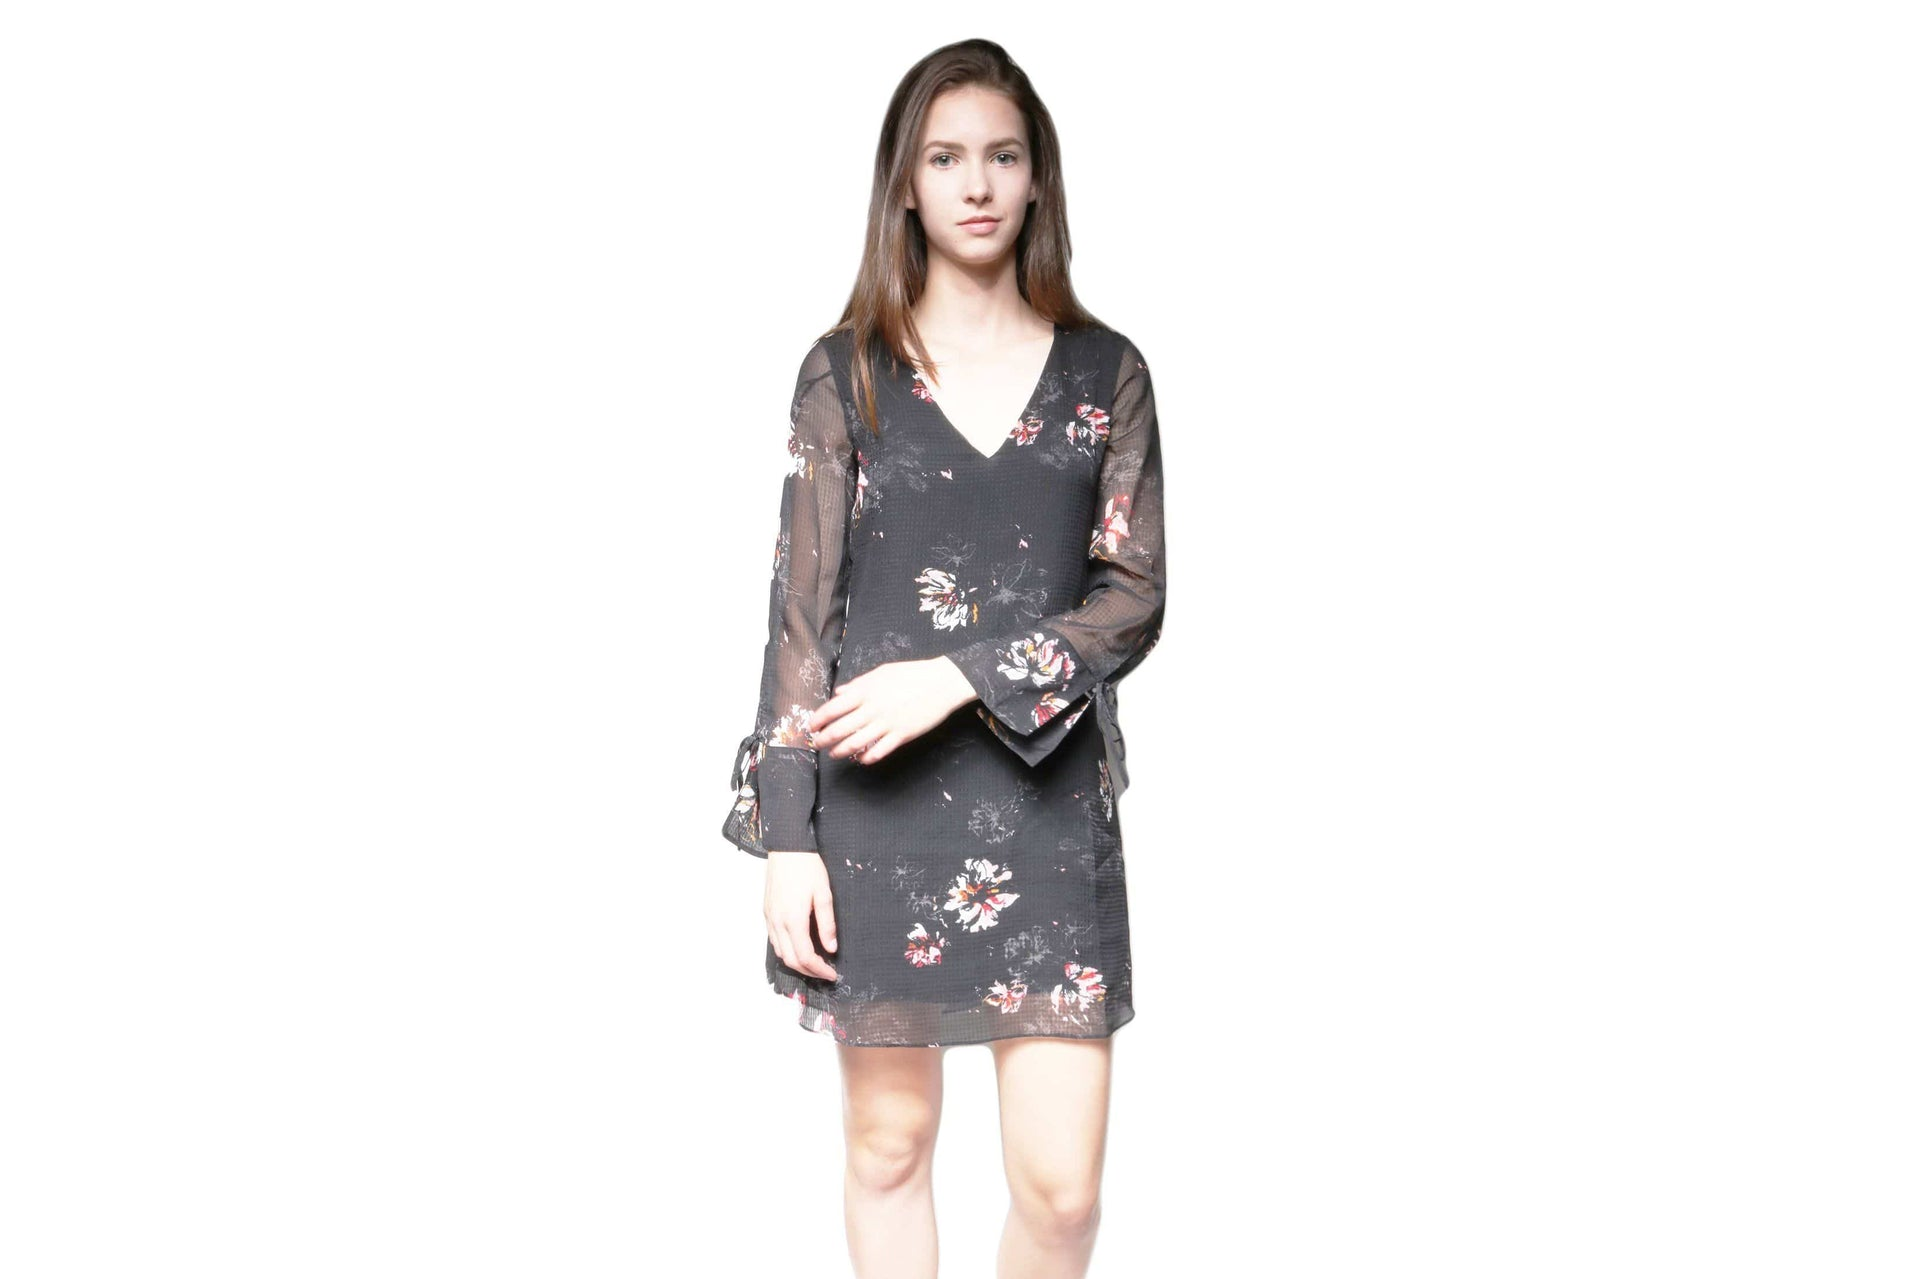 TATIANA WOMENS SOFTGOODS GENTLEFAWN BLACK FLASH FLORAL M